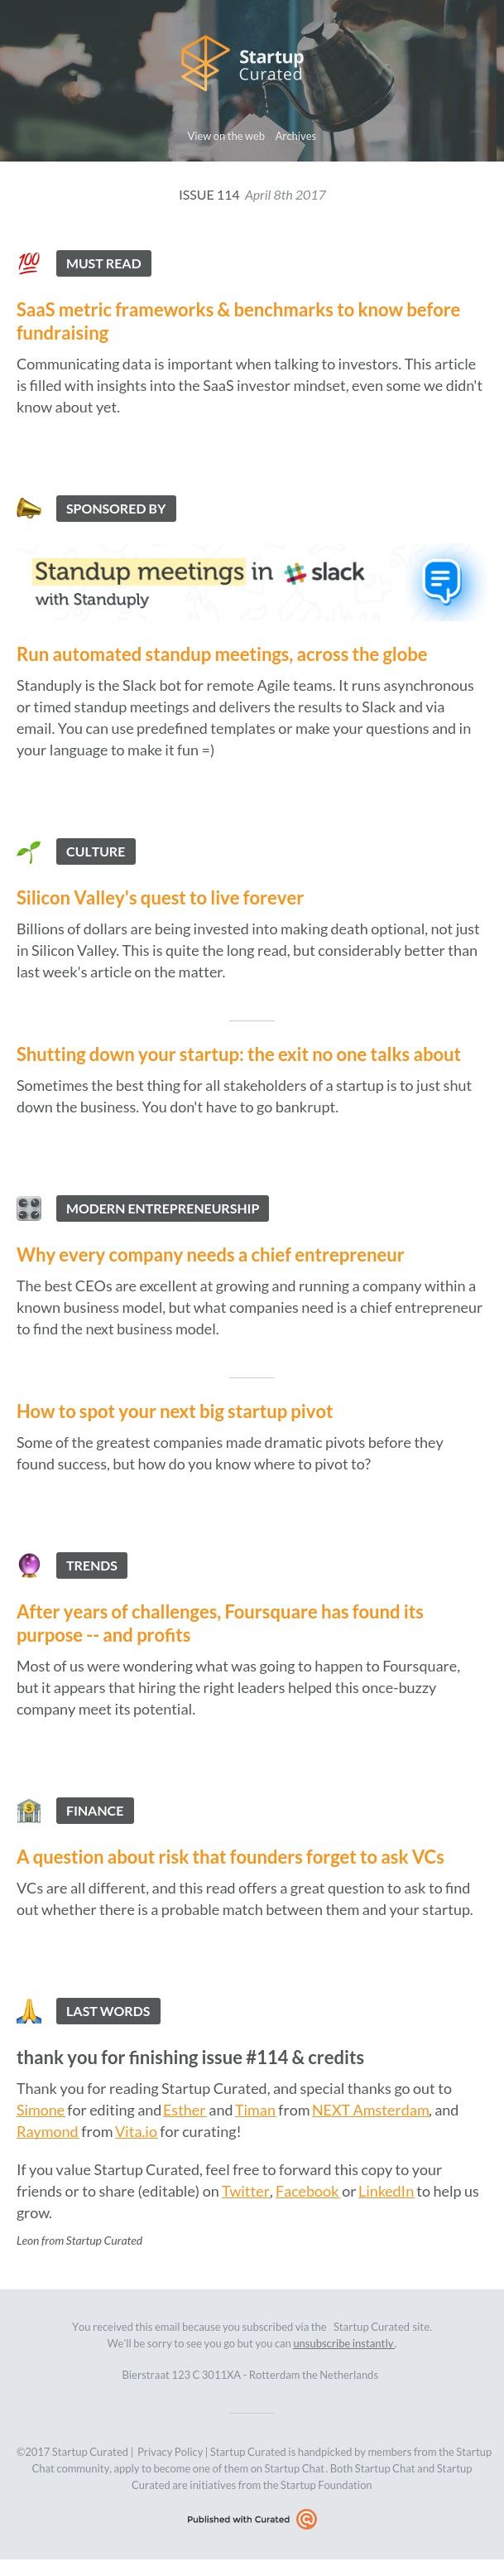 Startup Curated - Issue 114